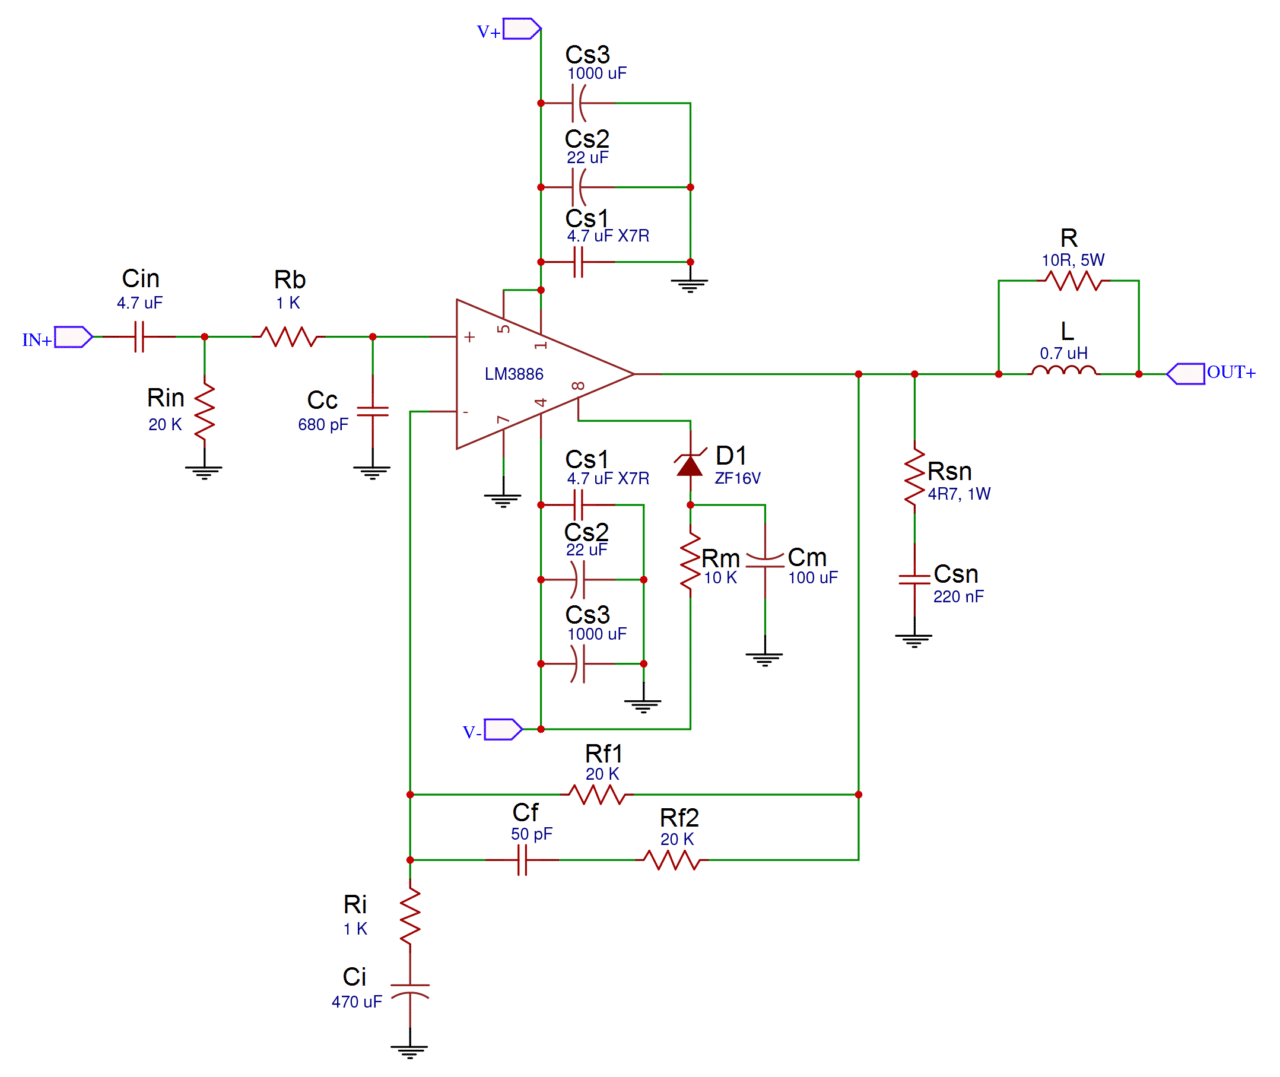 A Complete Guide To Design And Build Hi Fi Lm3886 Amplifier Circuit Diagram Projects Ill Be Using The Schematic Below Its Basically Same As One In Datasheet But With Optional Stability Components Included